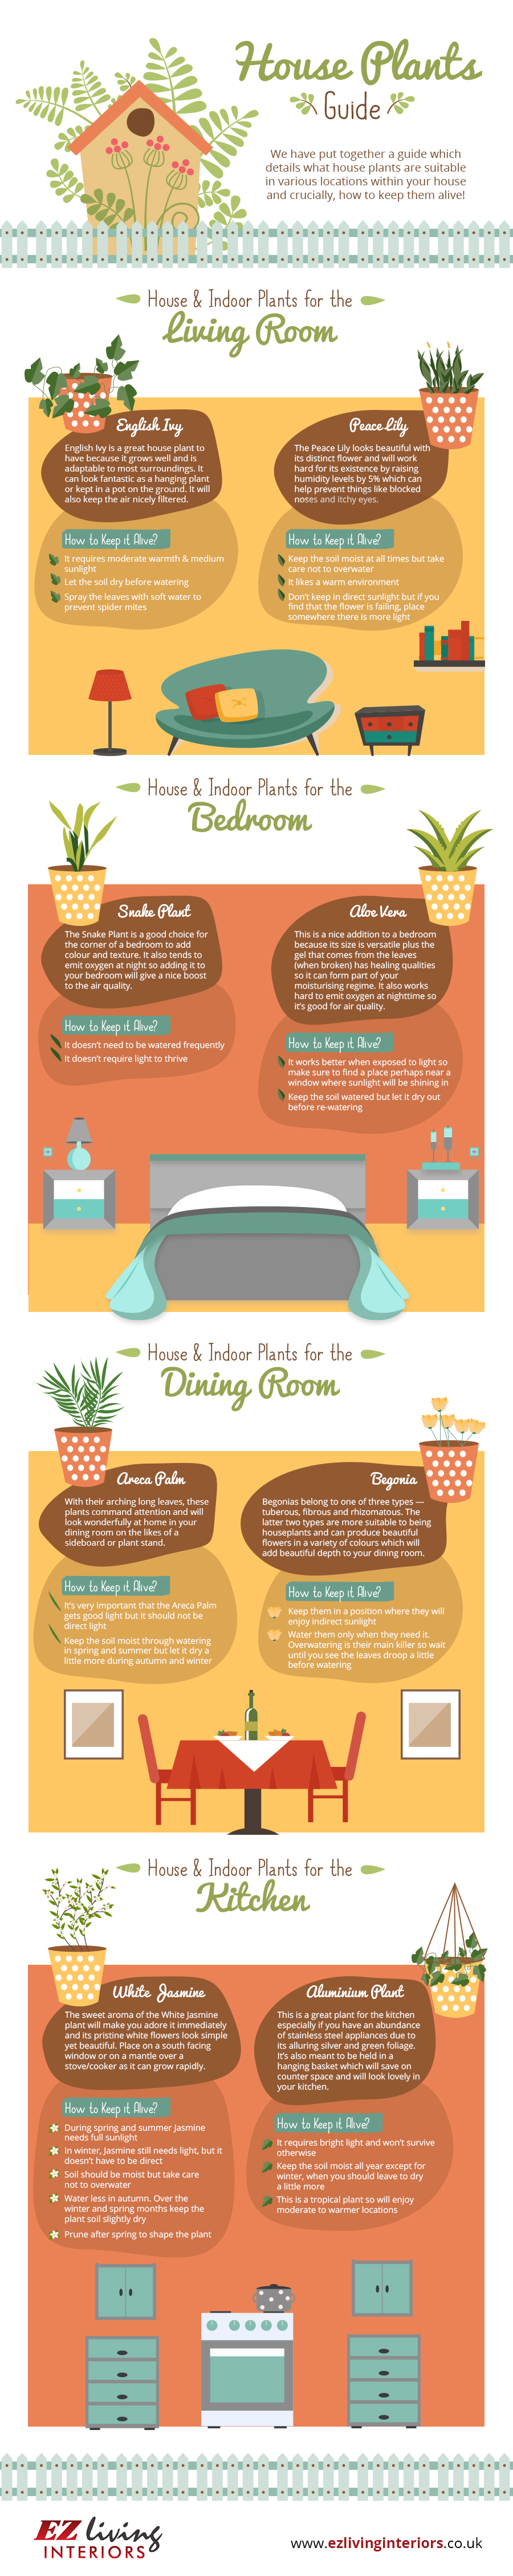 Guide to House Plants- Find Tips About How Growing Plants Indoors